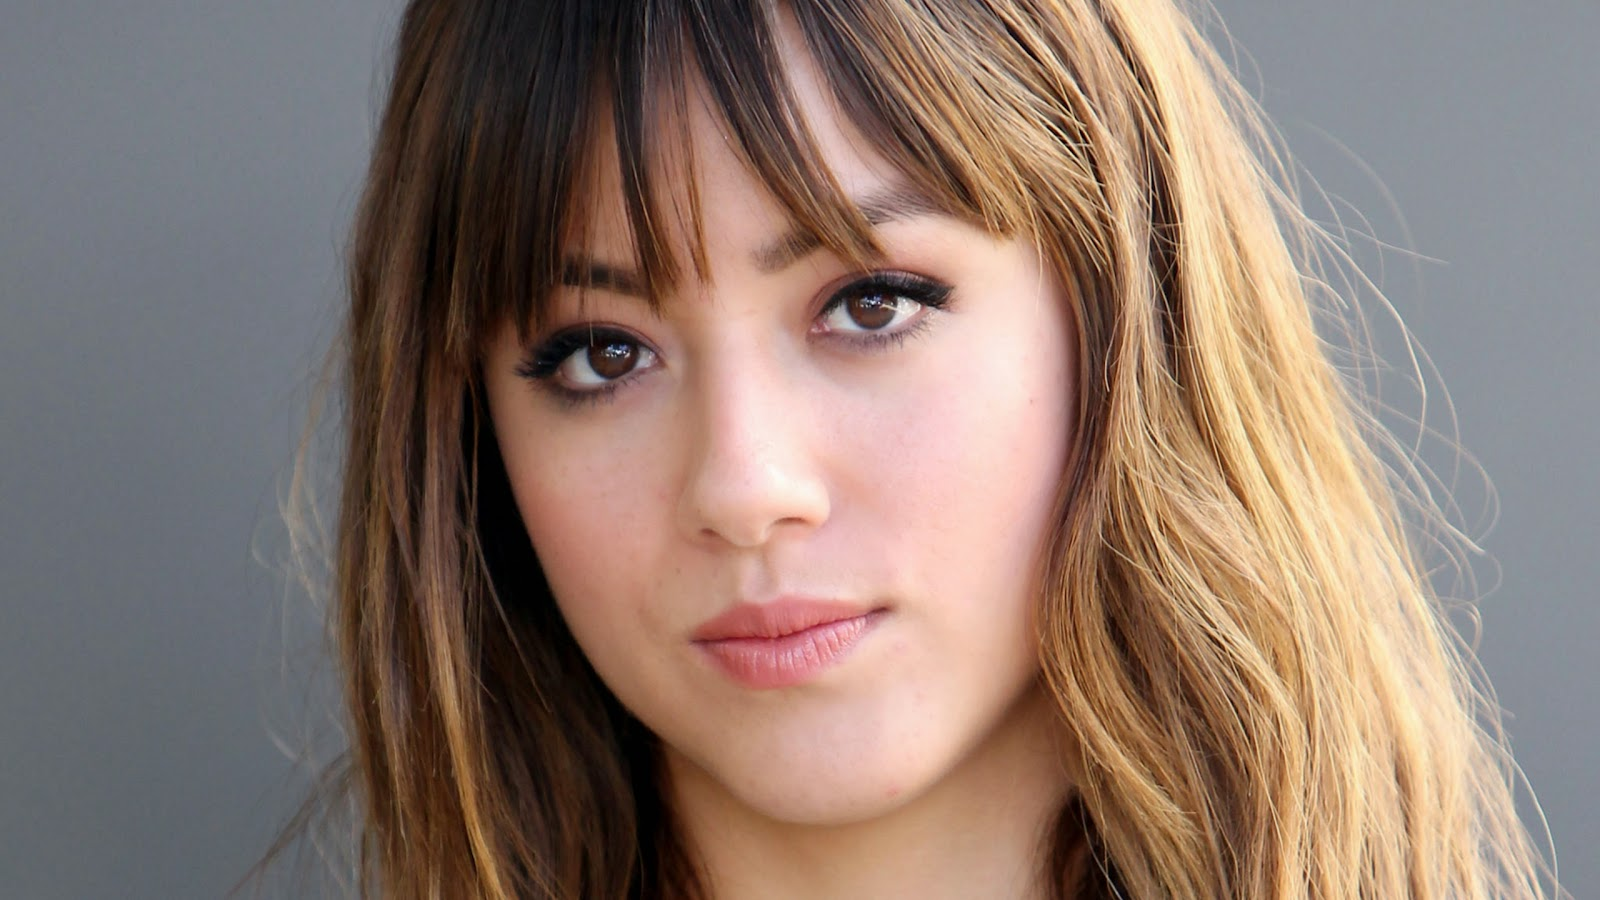 See and Save As chloe bennet fakes big collection porn